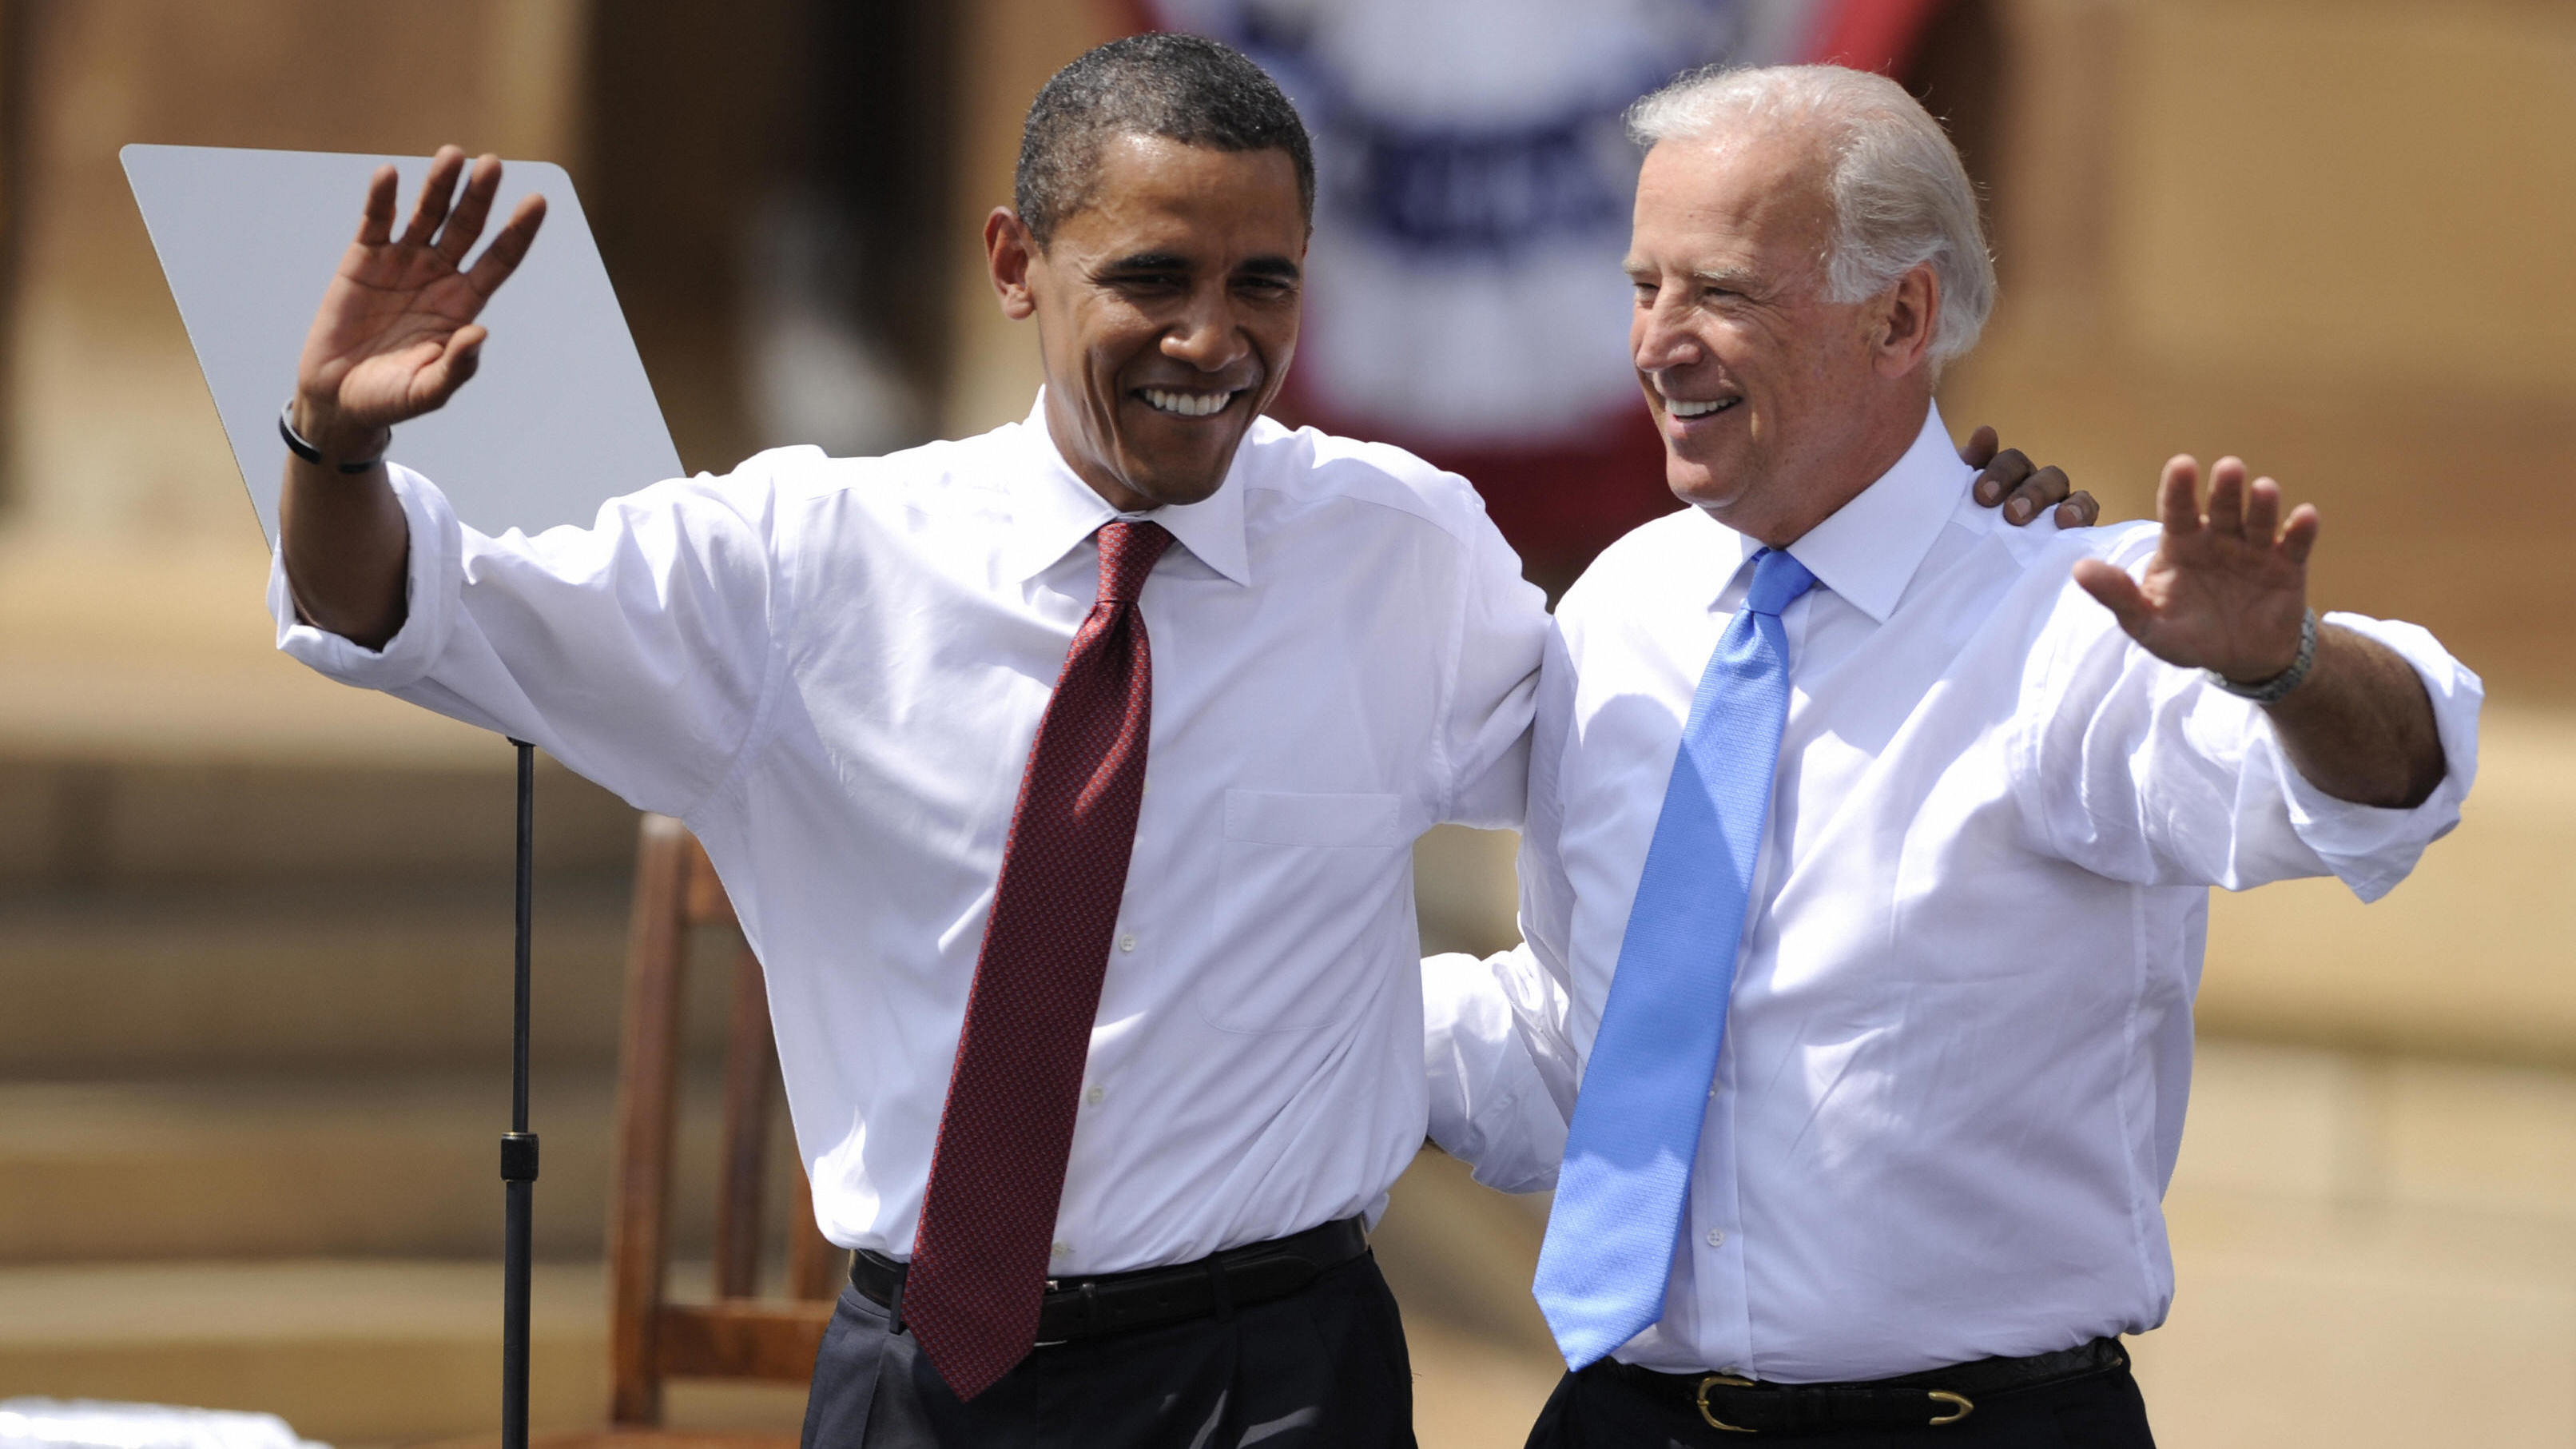 Biden S Vice Presidential Choice May Be Swayed By History Including His Own Npr